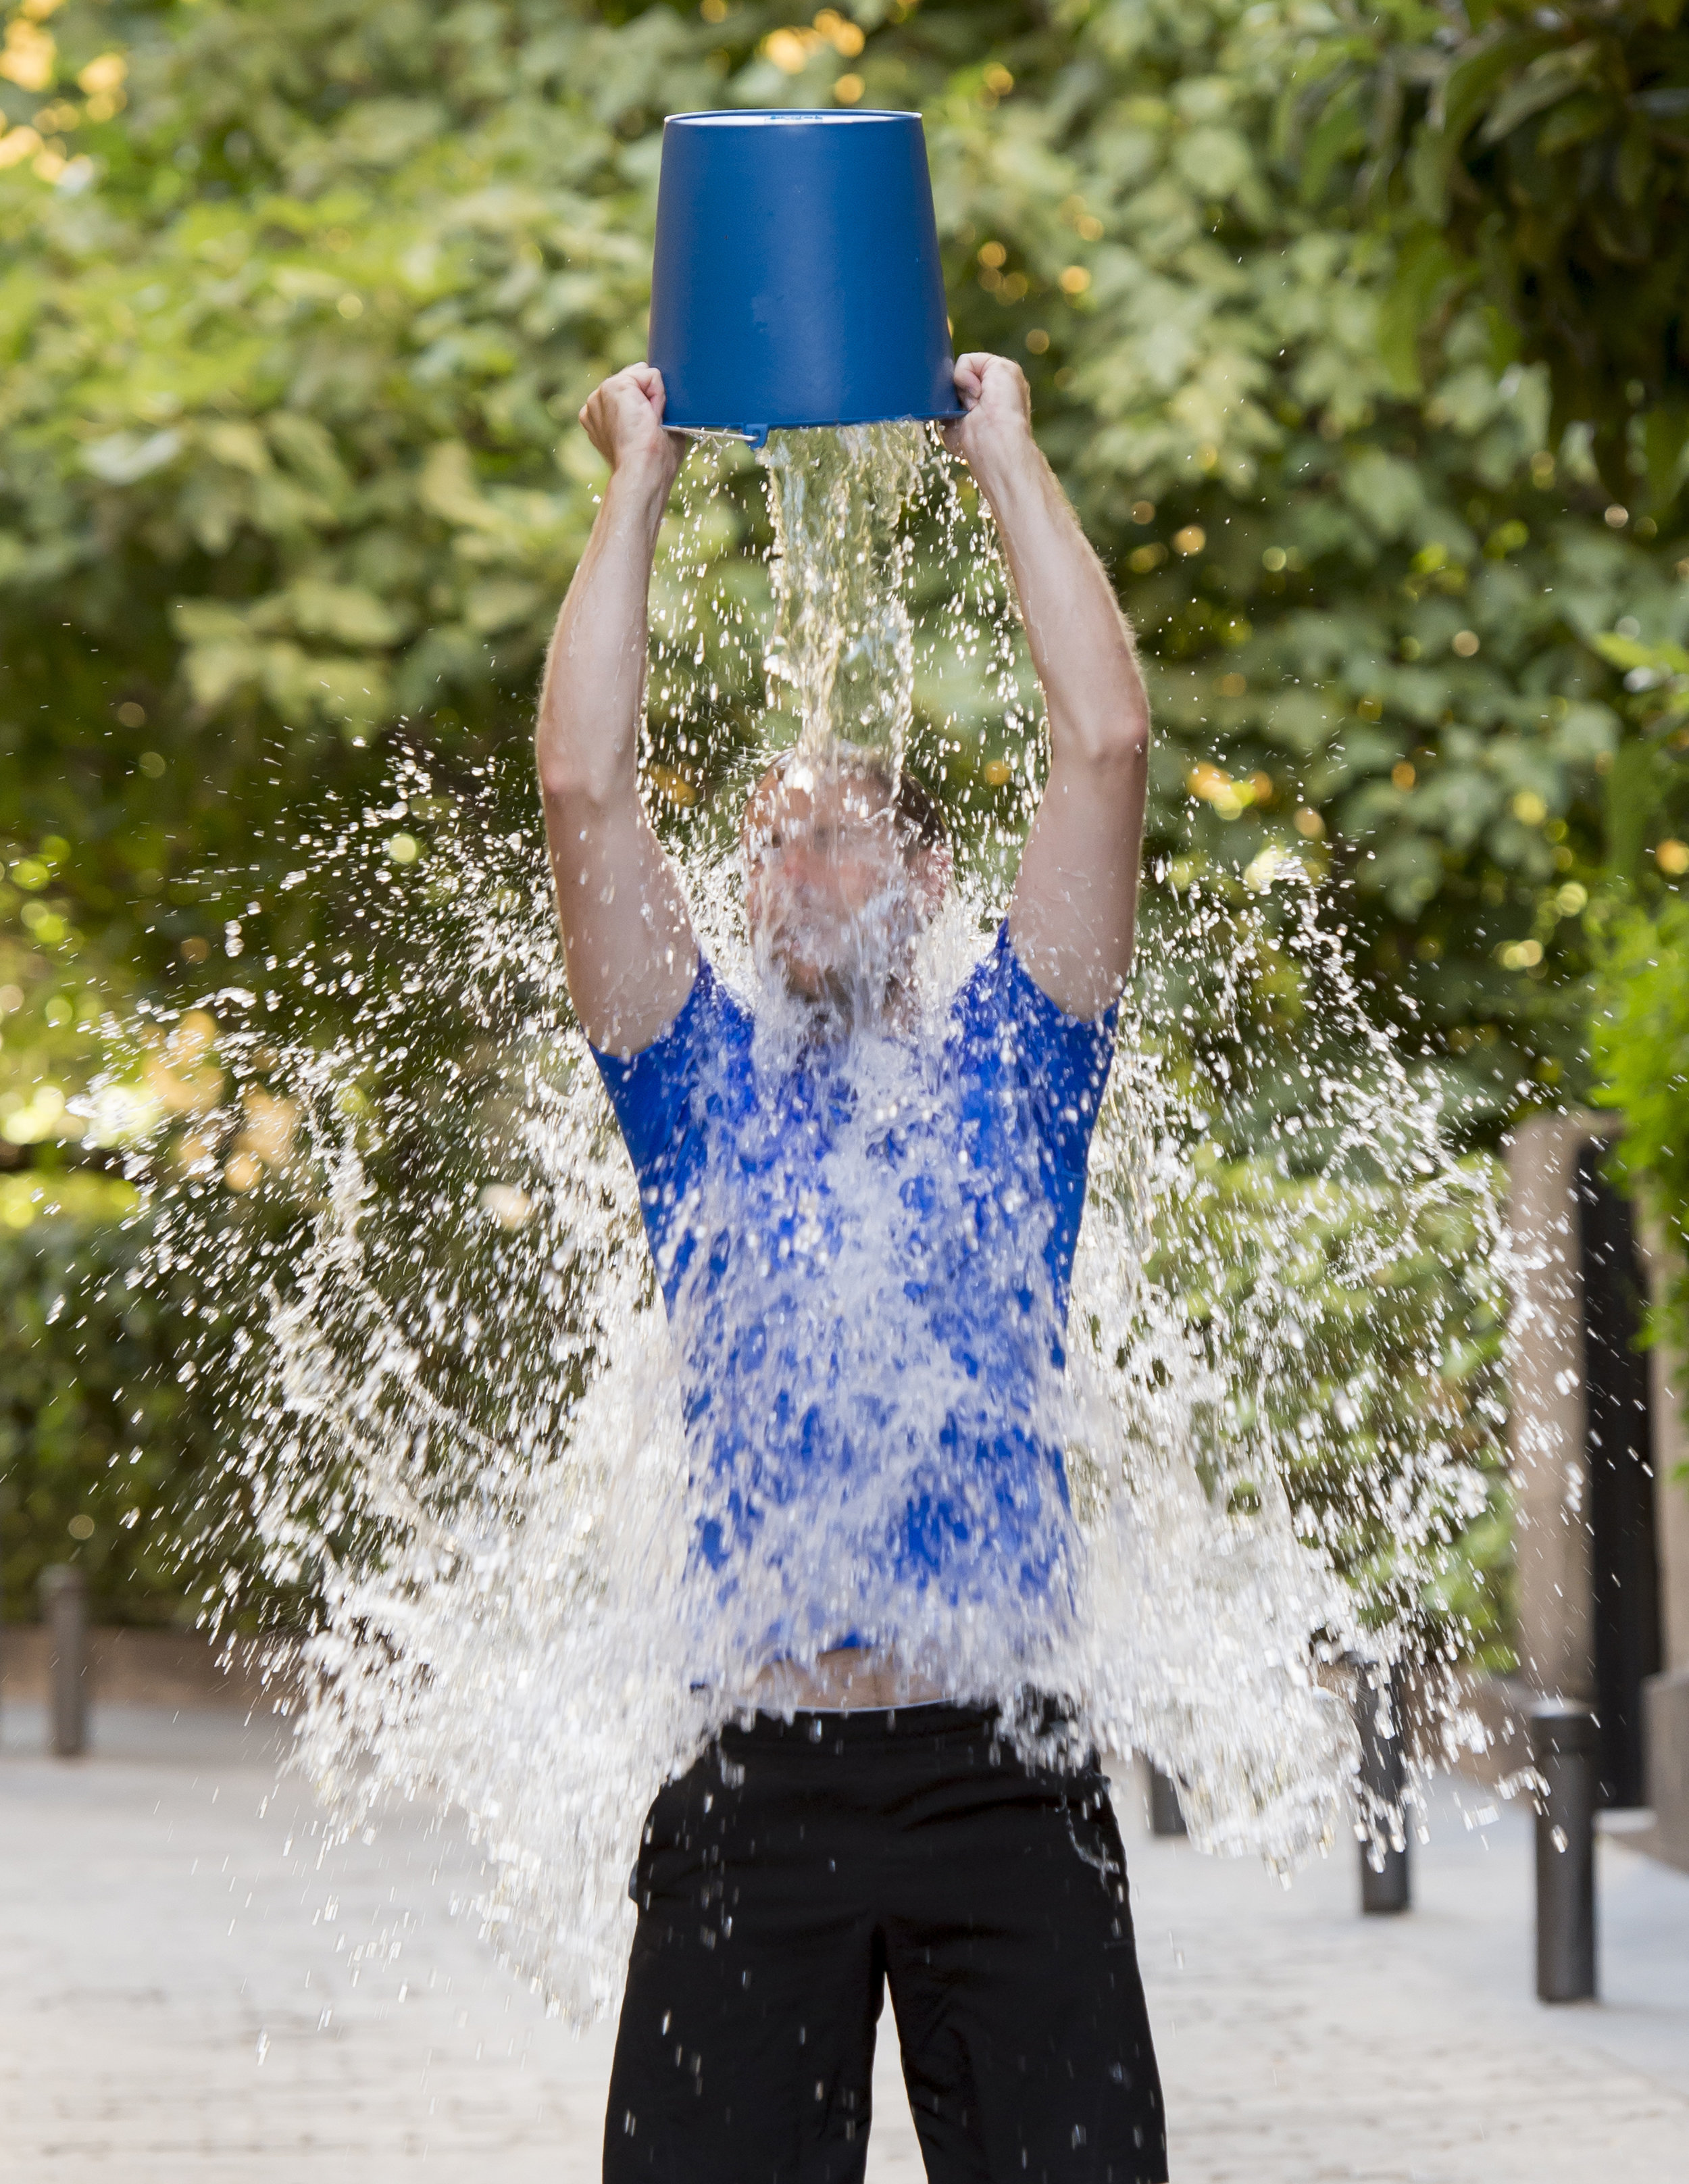 young man pouring ice water bucket on his head getting wet outdoors in internet viral media network challenge campaign to support degenerati.jpg